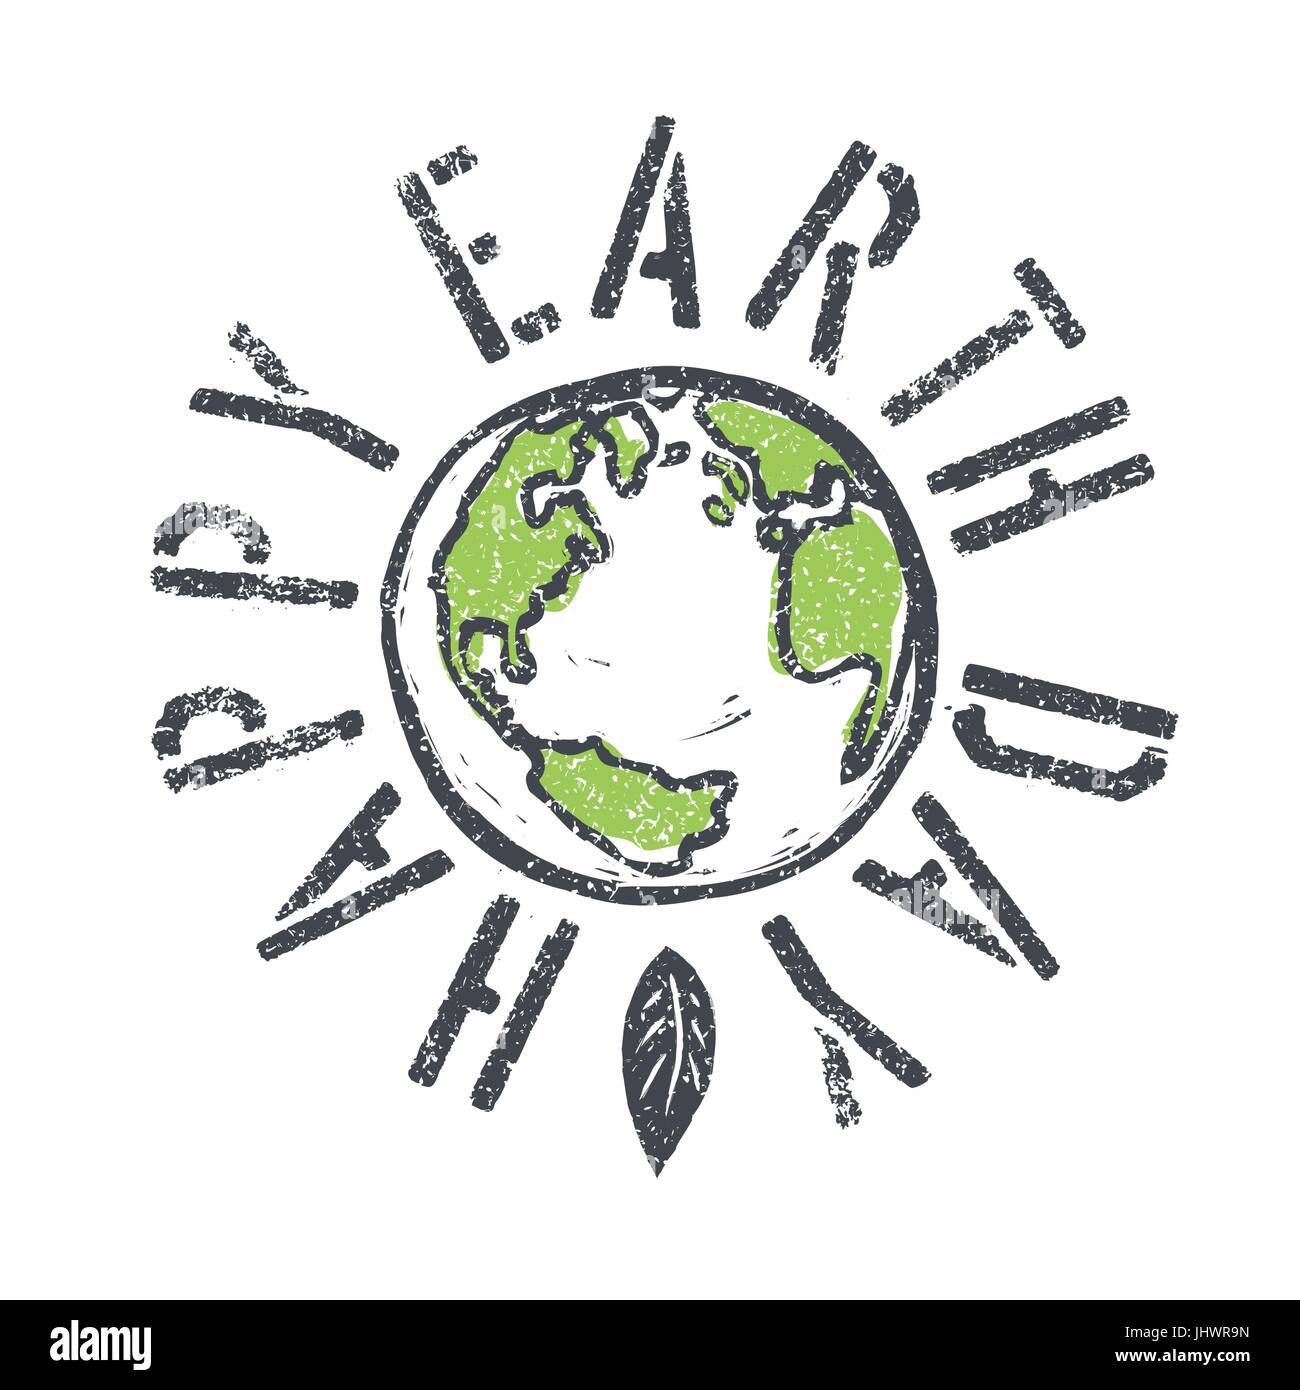 Happy earth day grunge lettering with earth symbol stock vector happy earth day grunge lettering with earth symbol buycottarizona